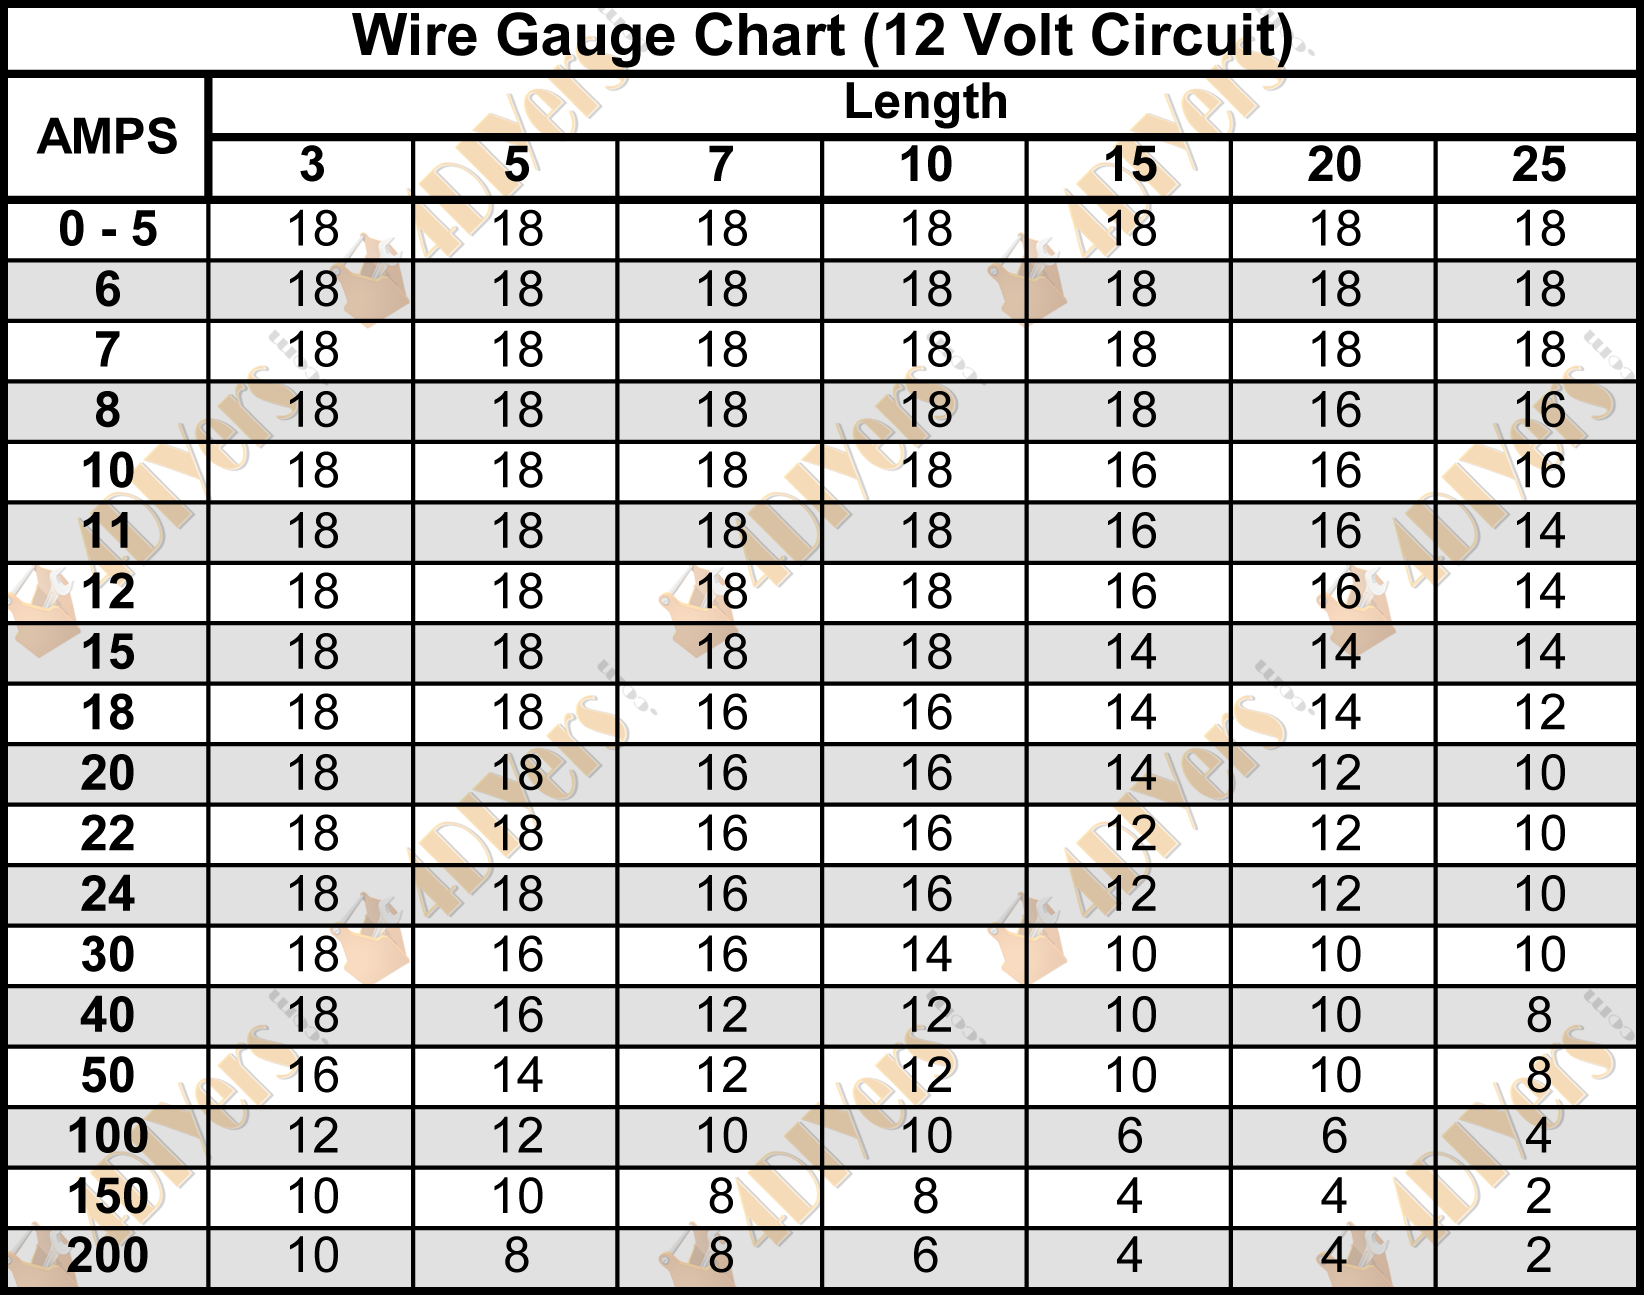 12v wire gauge chart dolapgnetband 12v wire gauge chart greentooth